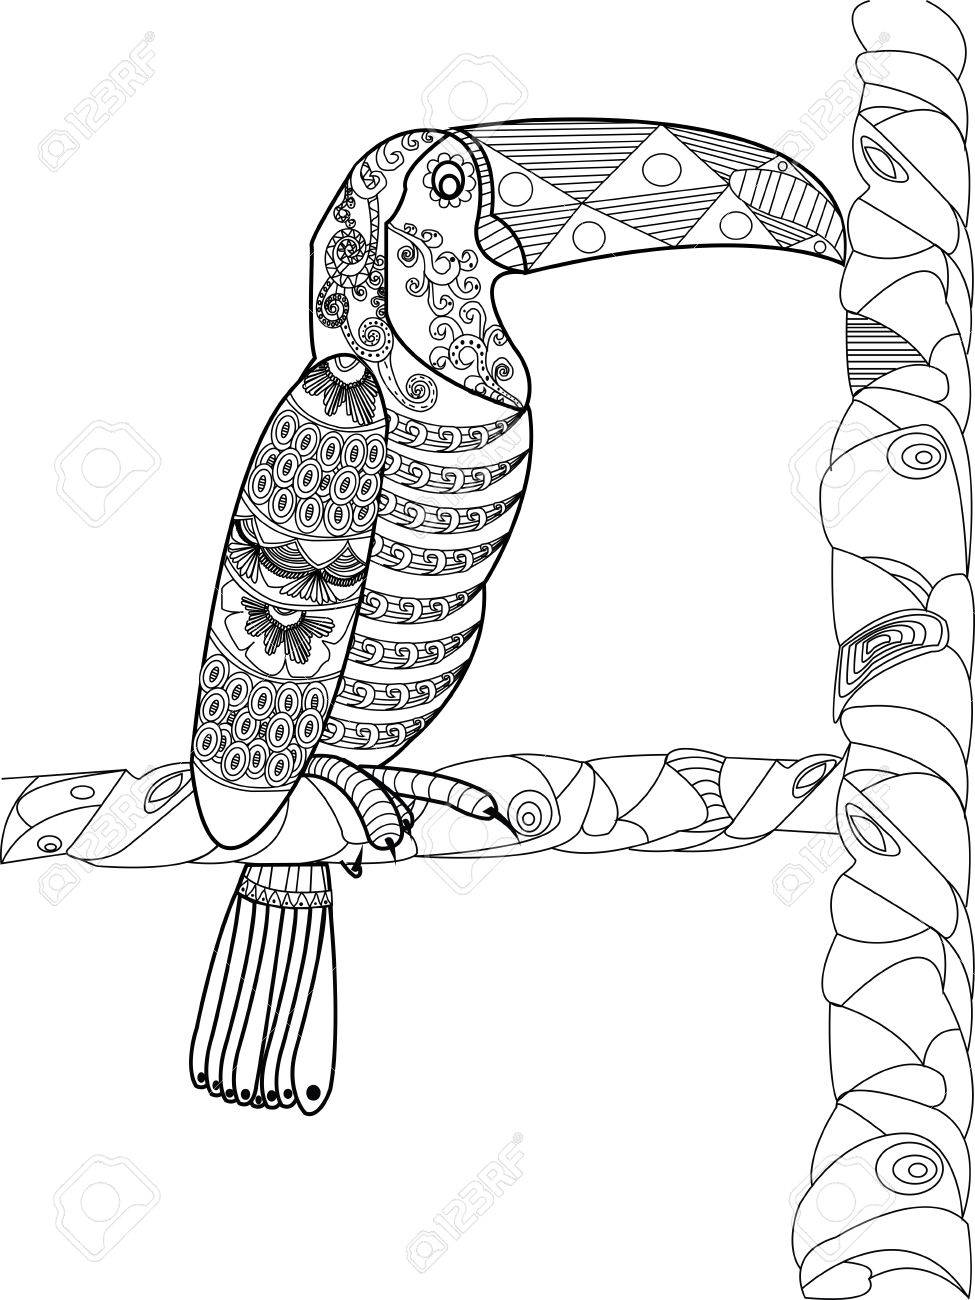 Toucan Animal Coloring Book For Adults Vector Illustration Anti Stress Adult